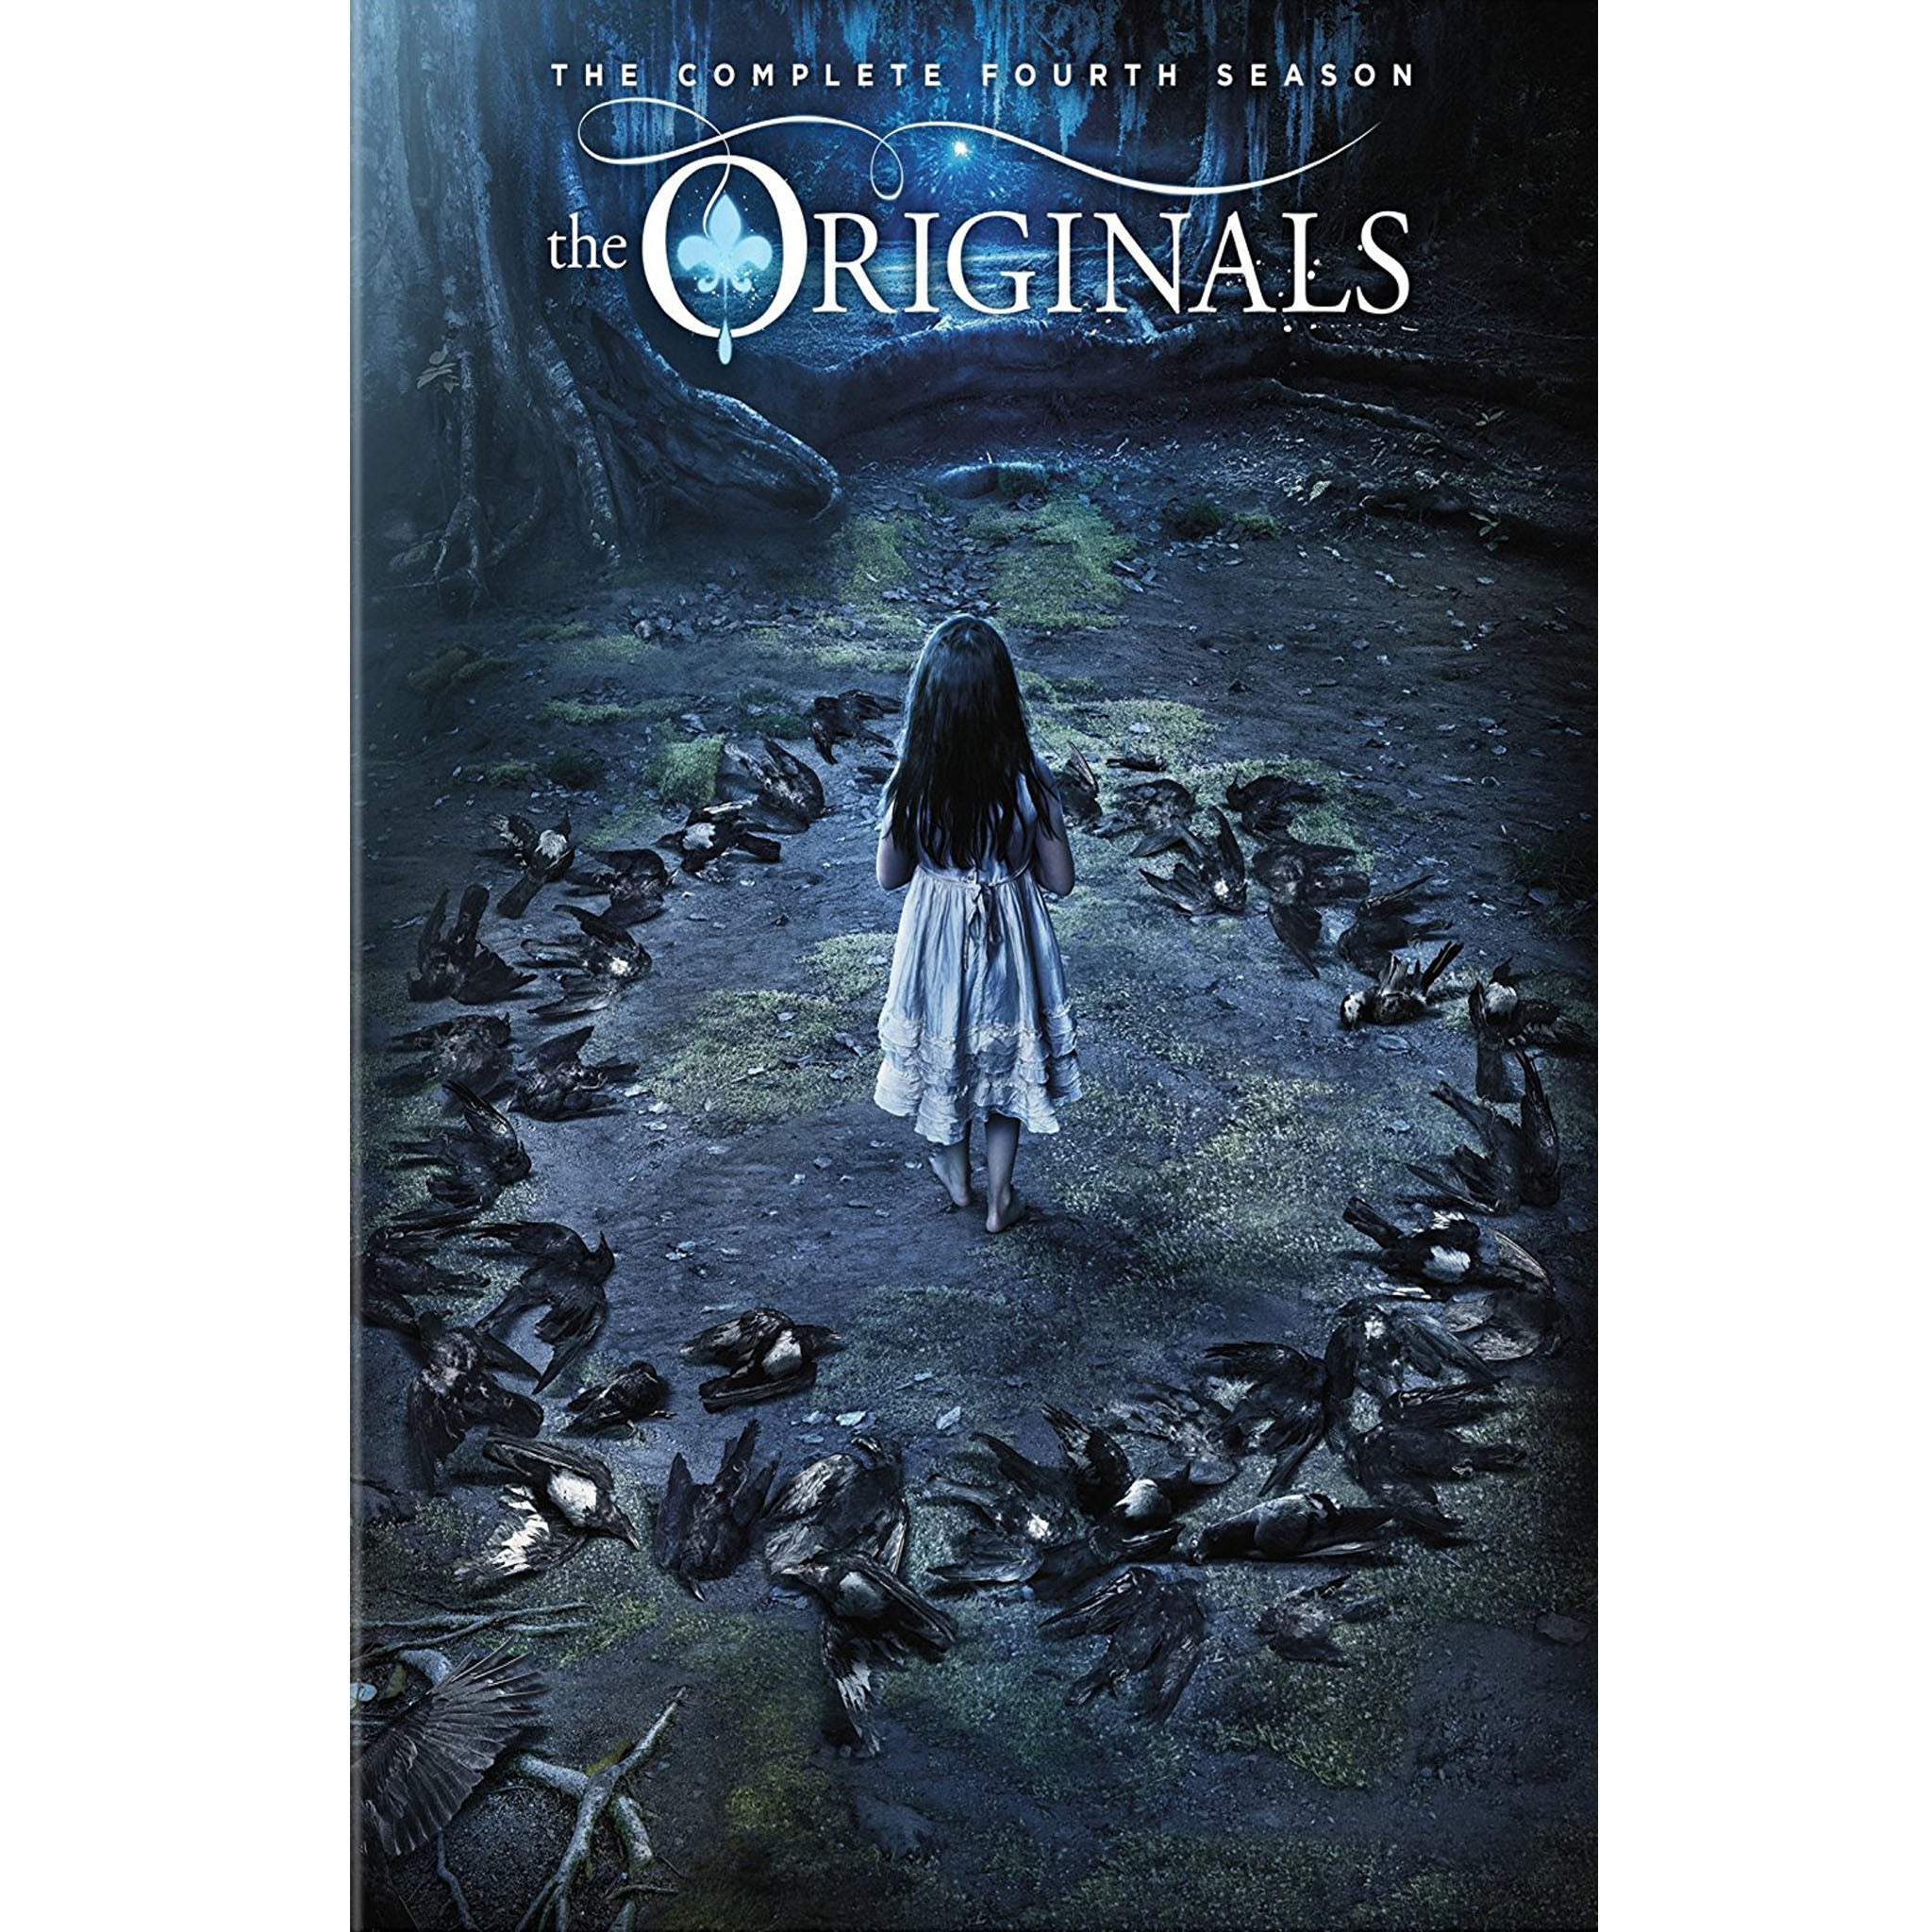 The Originals Season 4 (DVD) - DVDsHQ